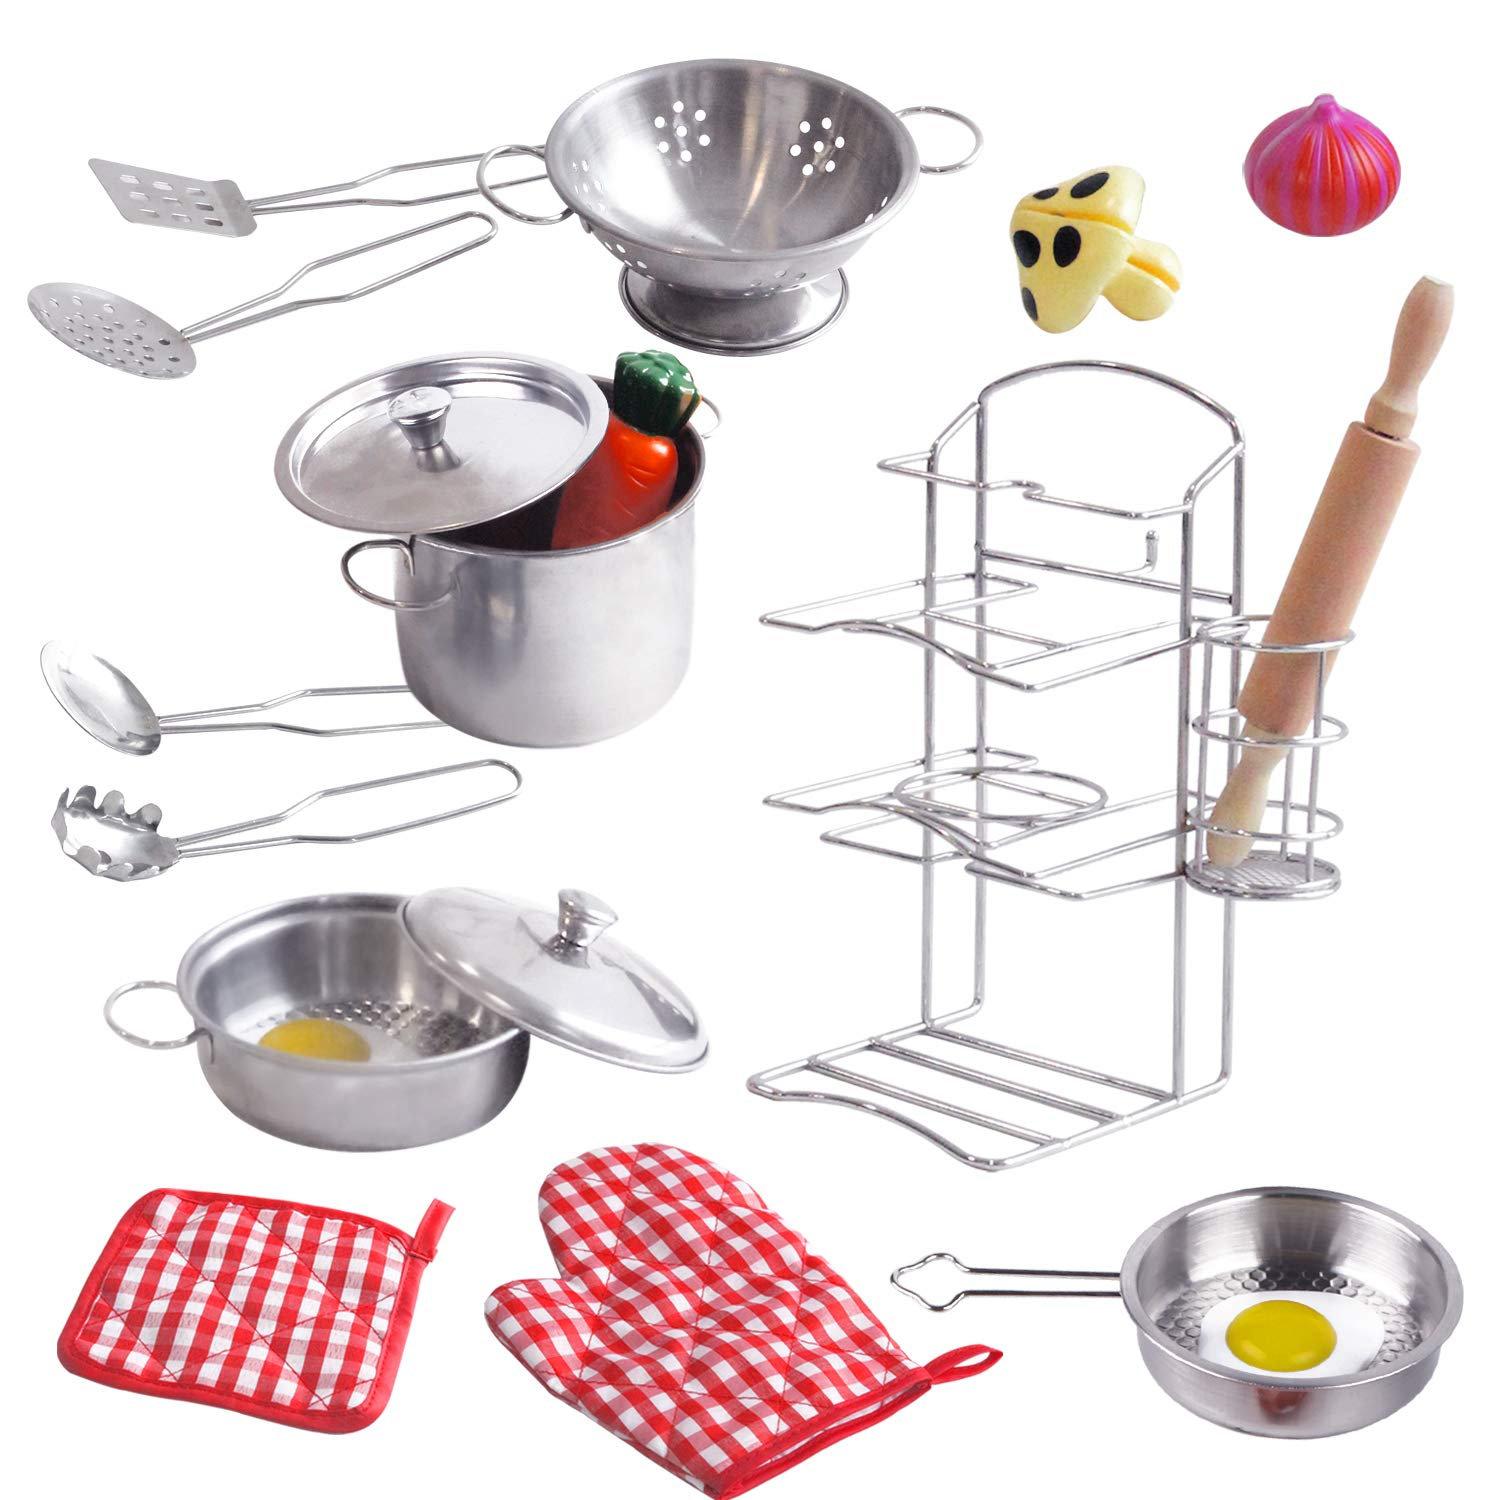 ToyerBee Pretend Play Toys, 17PCS Kitchen Play Accessories Set -Play Food & Stainless Steel Toys with Pots, Pans, Wooden Spoons, Pot Holders & Storage- Pretend Toys for Kids, Toddlers, Girls & Boys by ToyerBee